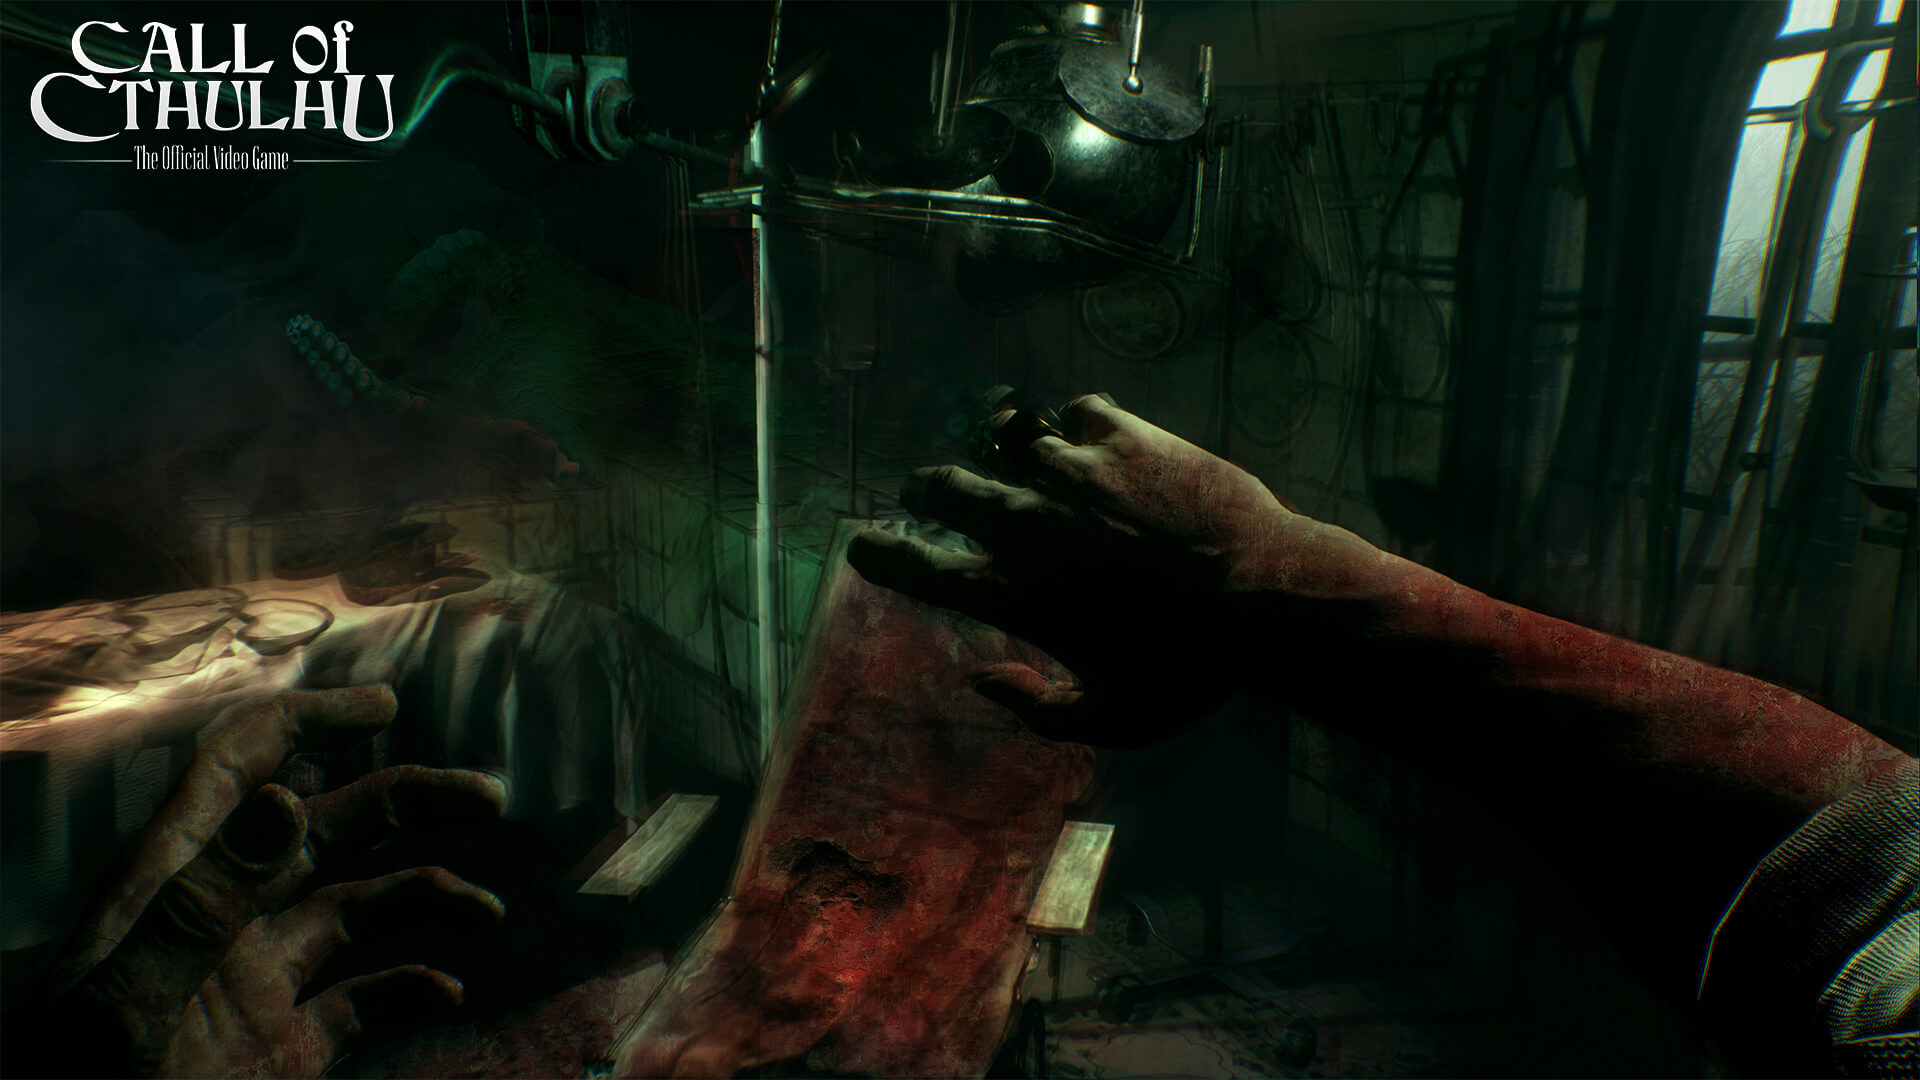 Game Review: Join the cult and hear the Call of Cthulhu